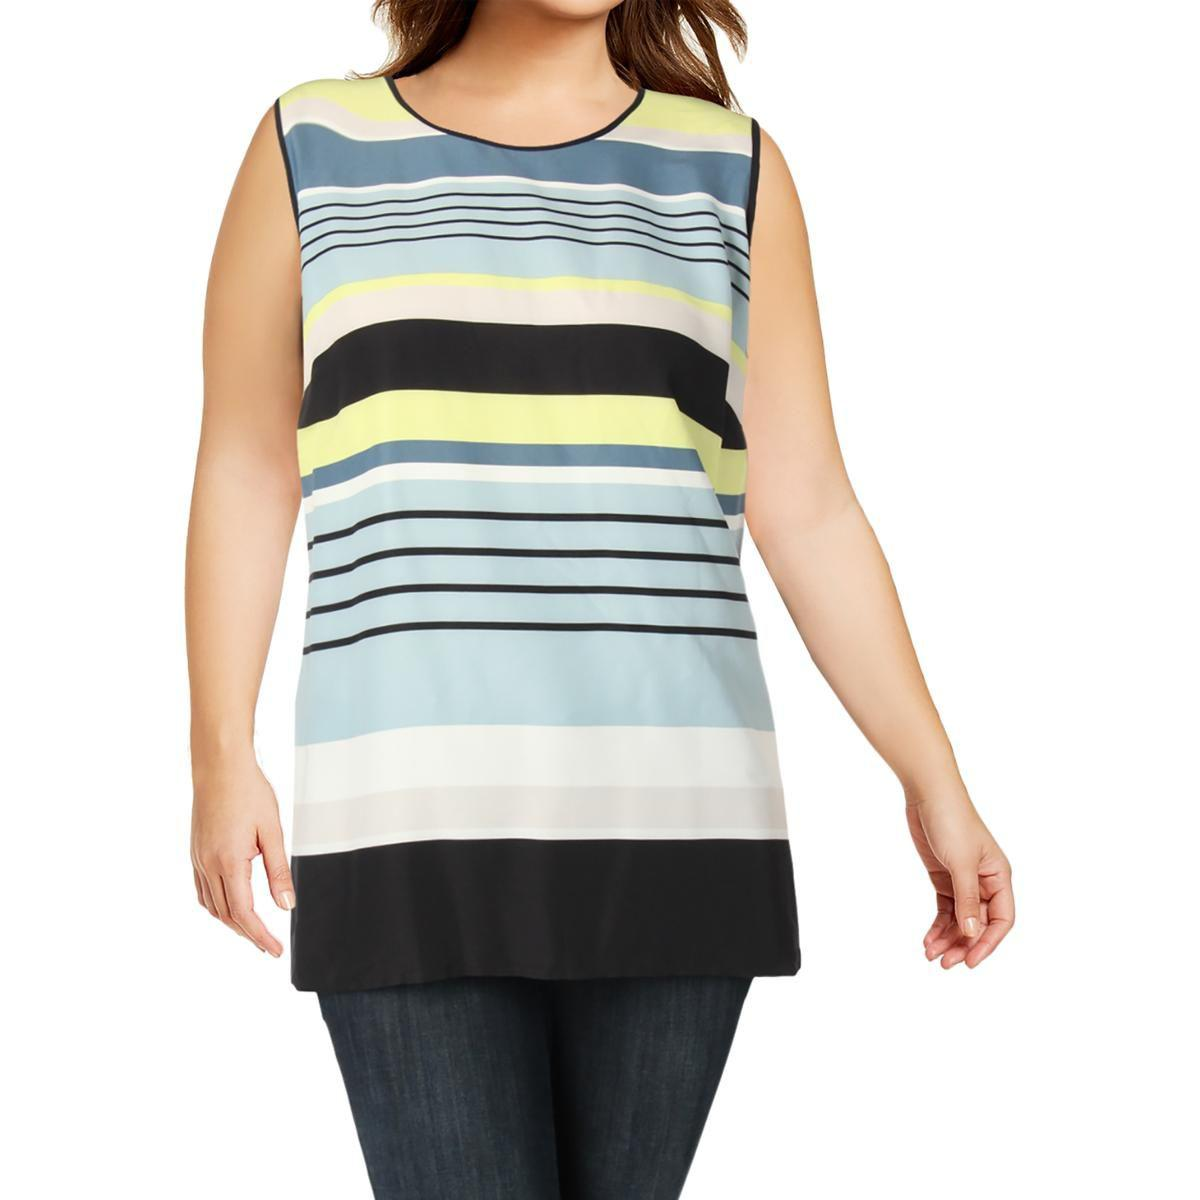 ade18a654ccc4 Lyst - Vince Camuto Womens Plus Striped Sleeveless Tunic Top in Blue